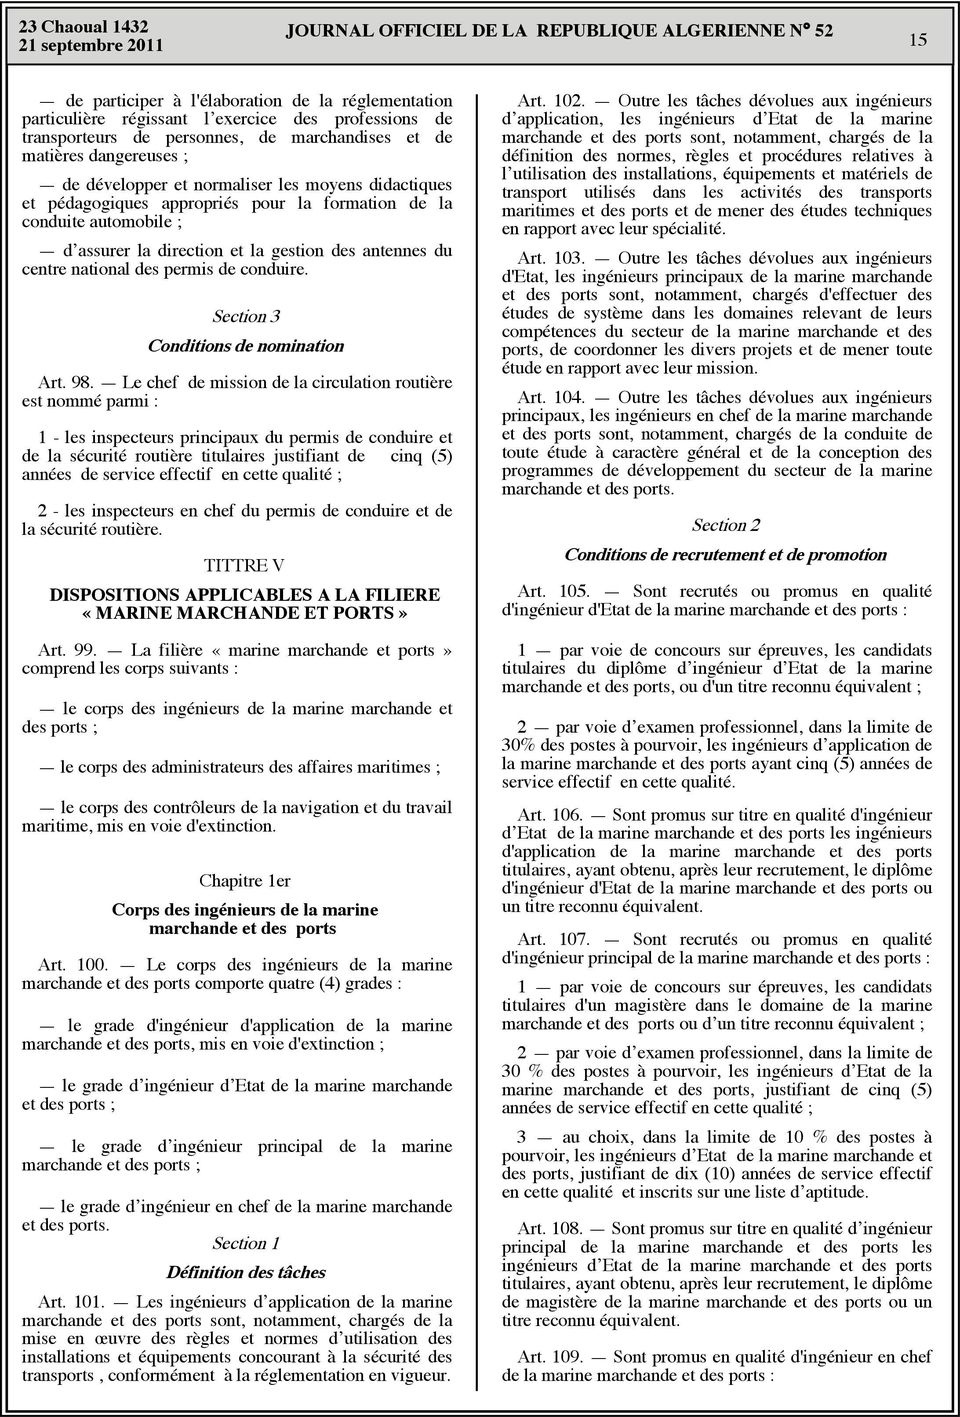 permis de conduire. Section 3 Conditions de nomination Art. 98.